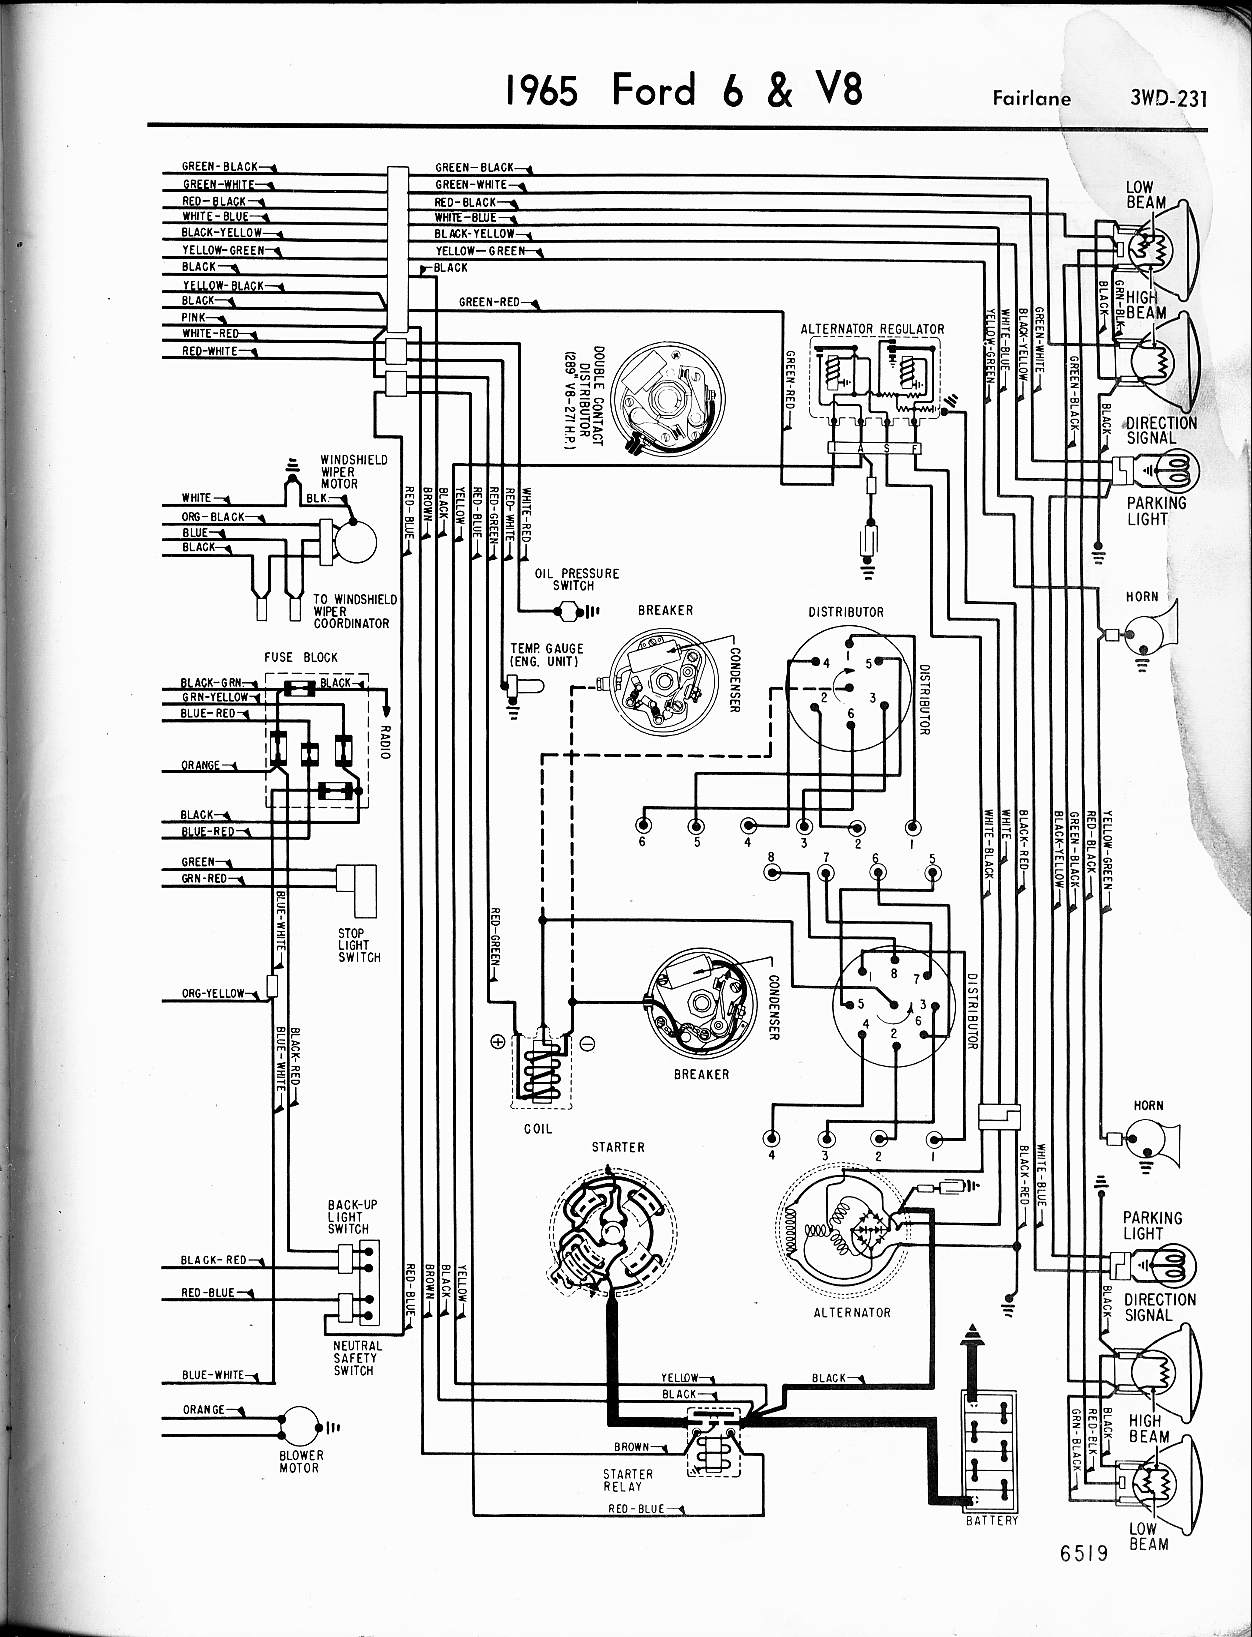 97 Ford Mustang Alternator Wiring Diagram together with 1963 Ford Galaxie 500 Wiring Diagram Free besides 3y7h1 Good Morning I 1988 Ford F 450 460 Gas Engine I as well 1963 C10 Wiring Diagram furthermore Wiring Diagram For 1968 Corvette. on 1966 chevy truck green